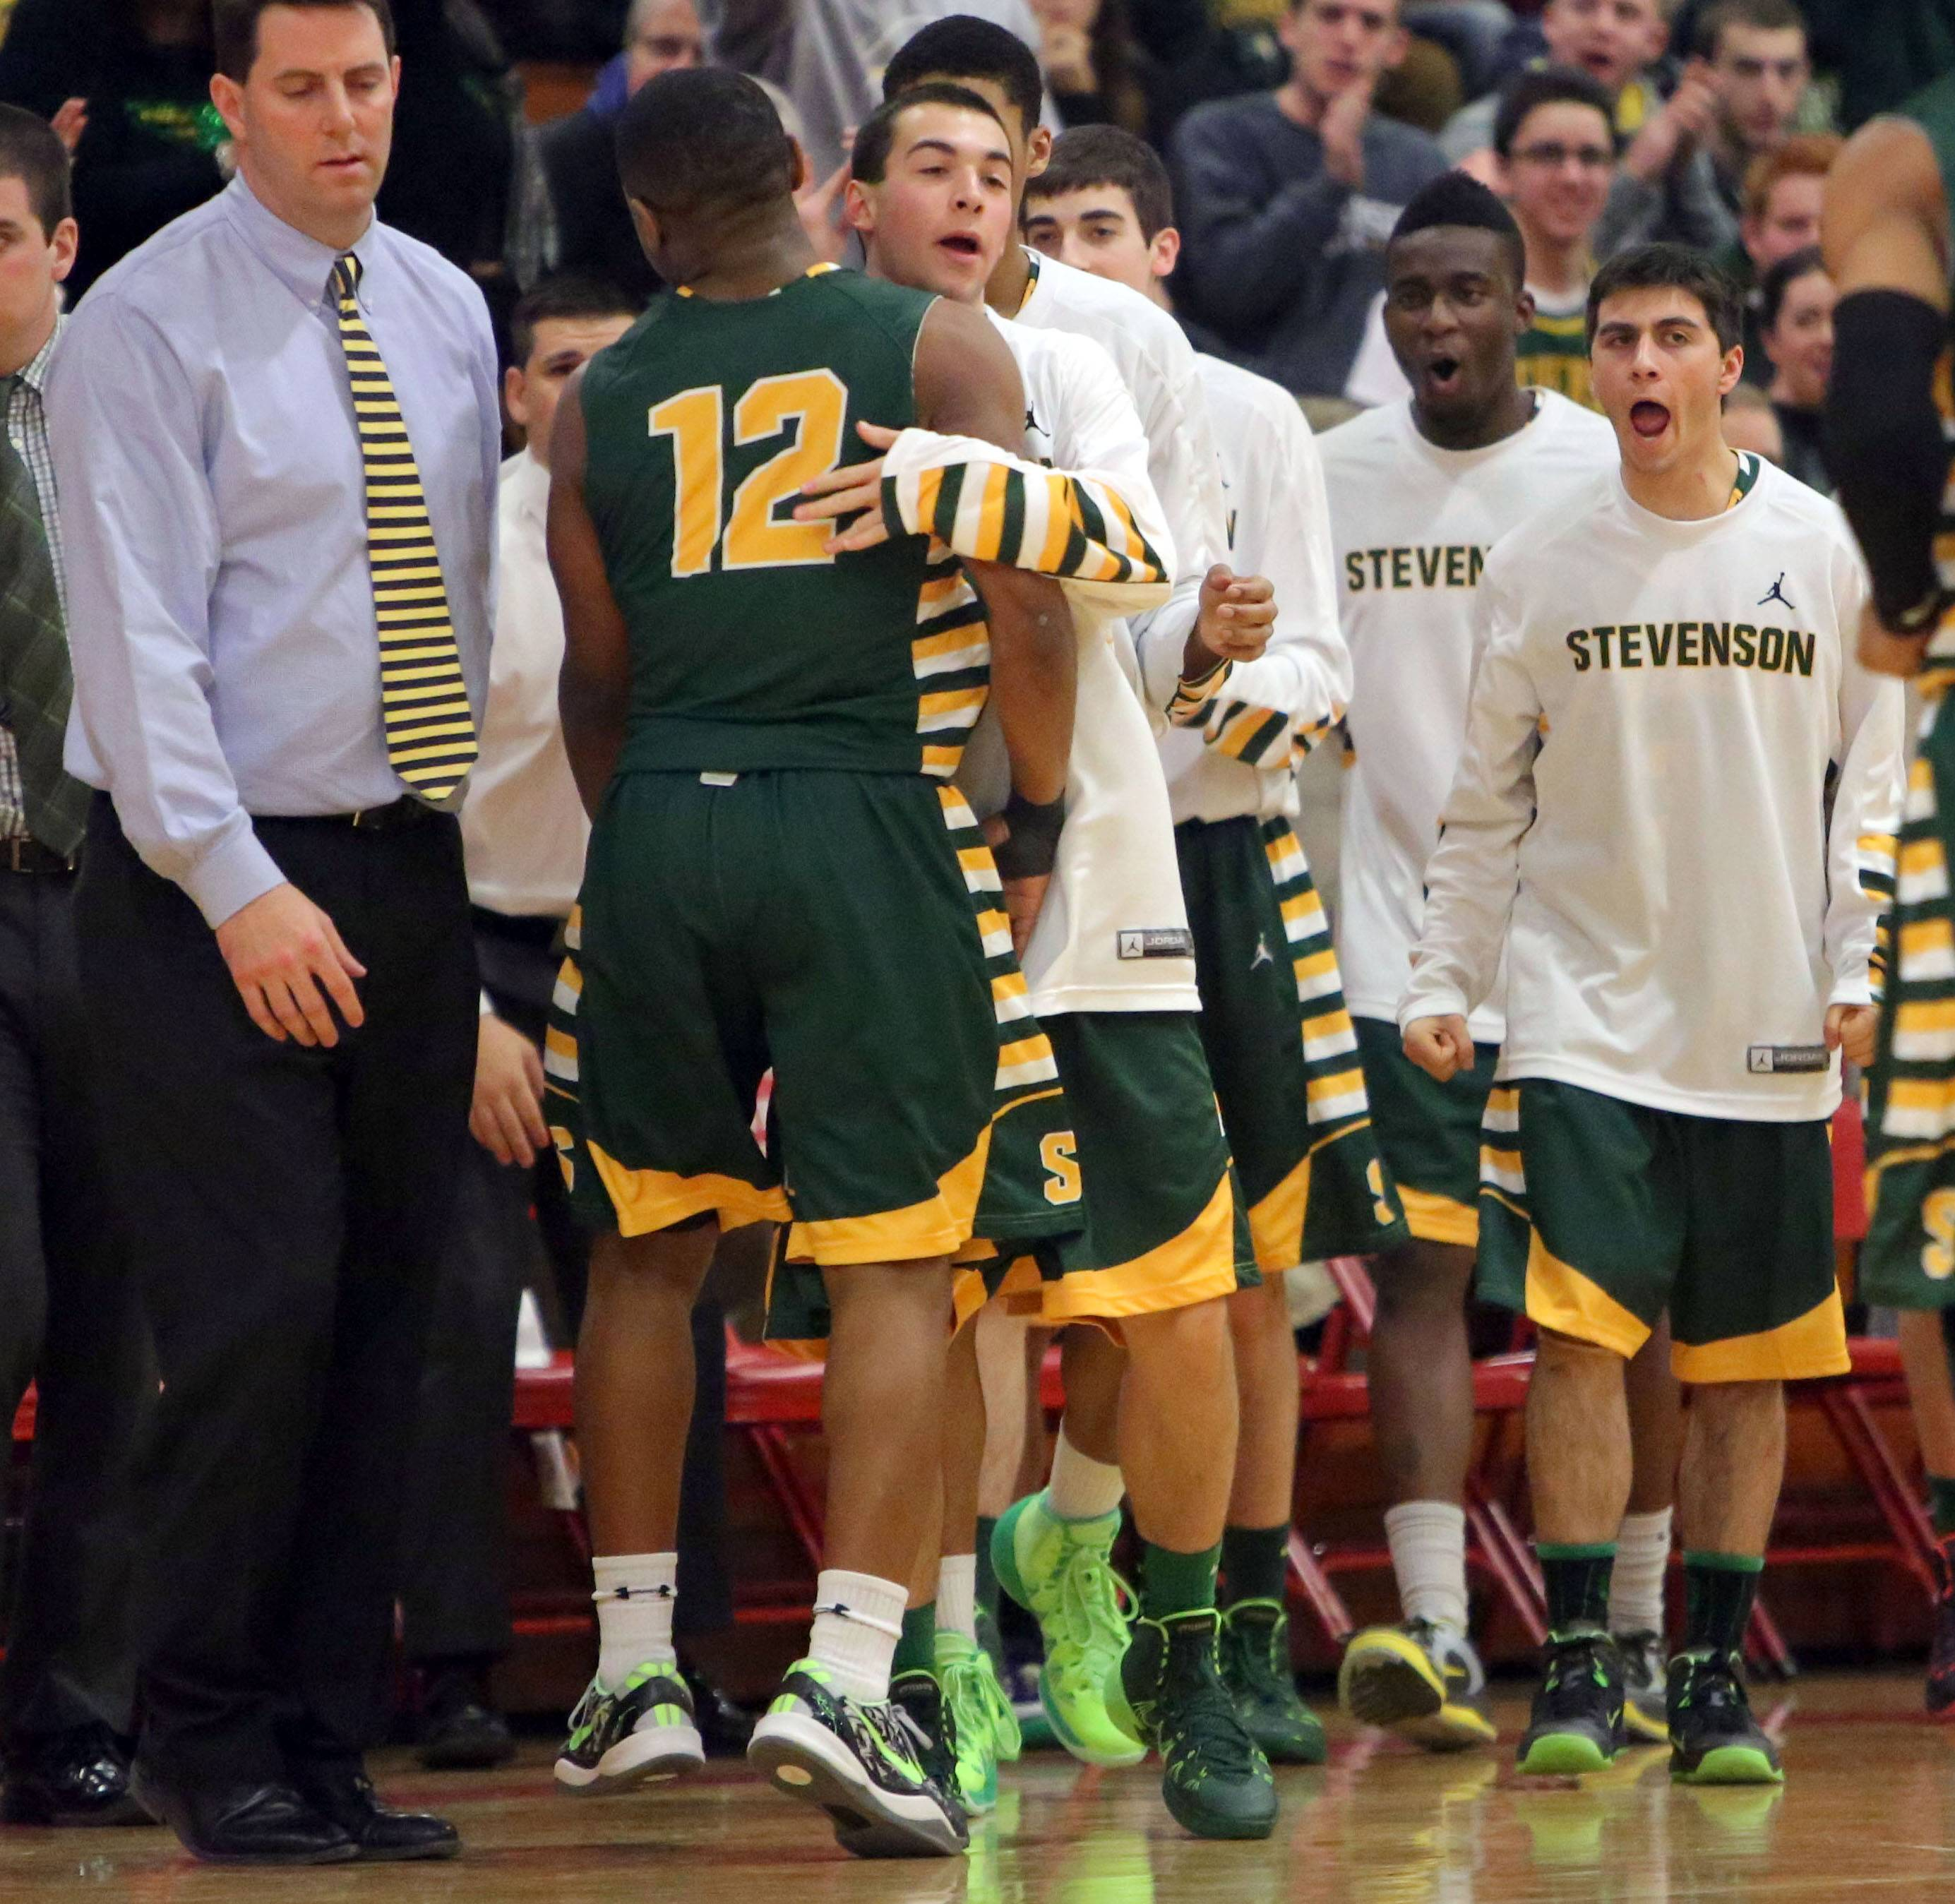 Stevenson's Matt Johnson is greeted by the bench during their victory over North Chicago in the North Suburban Conference championship game Wednesday night at North Chicago.